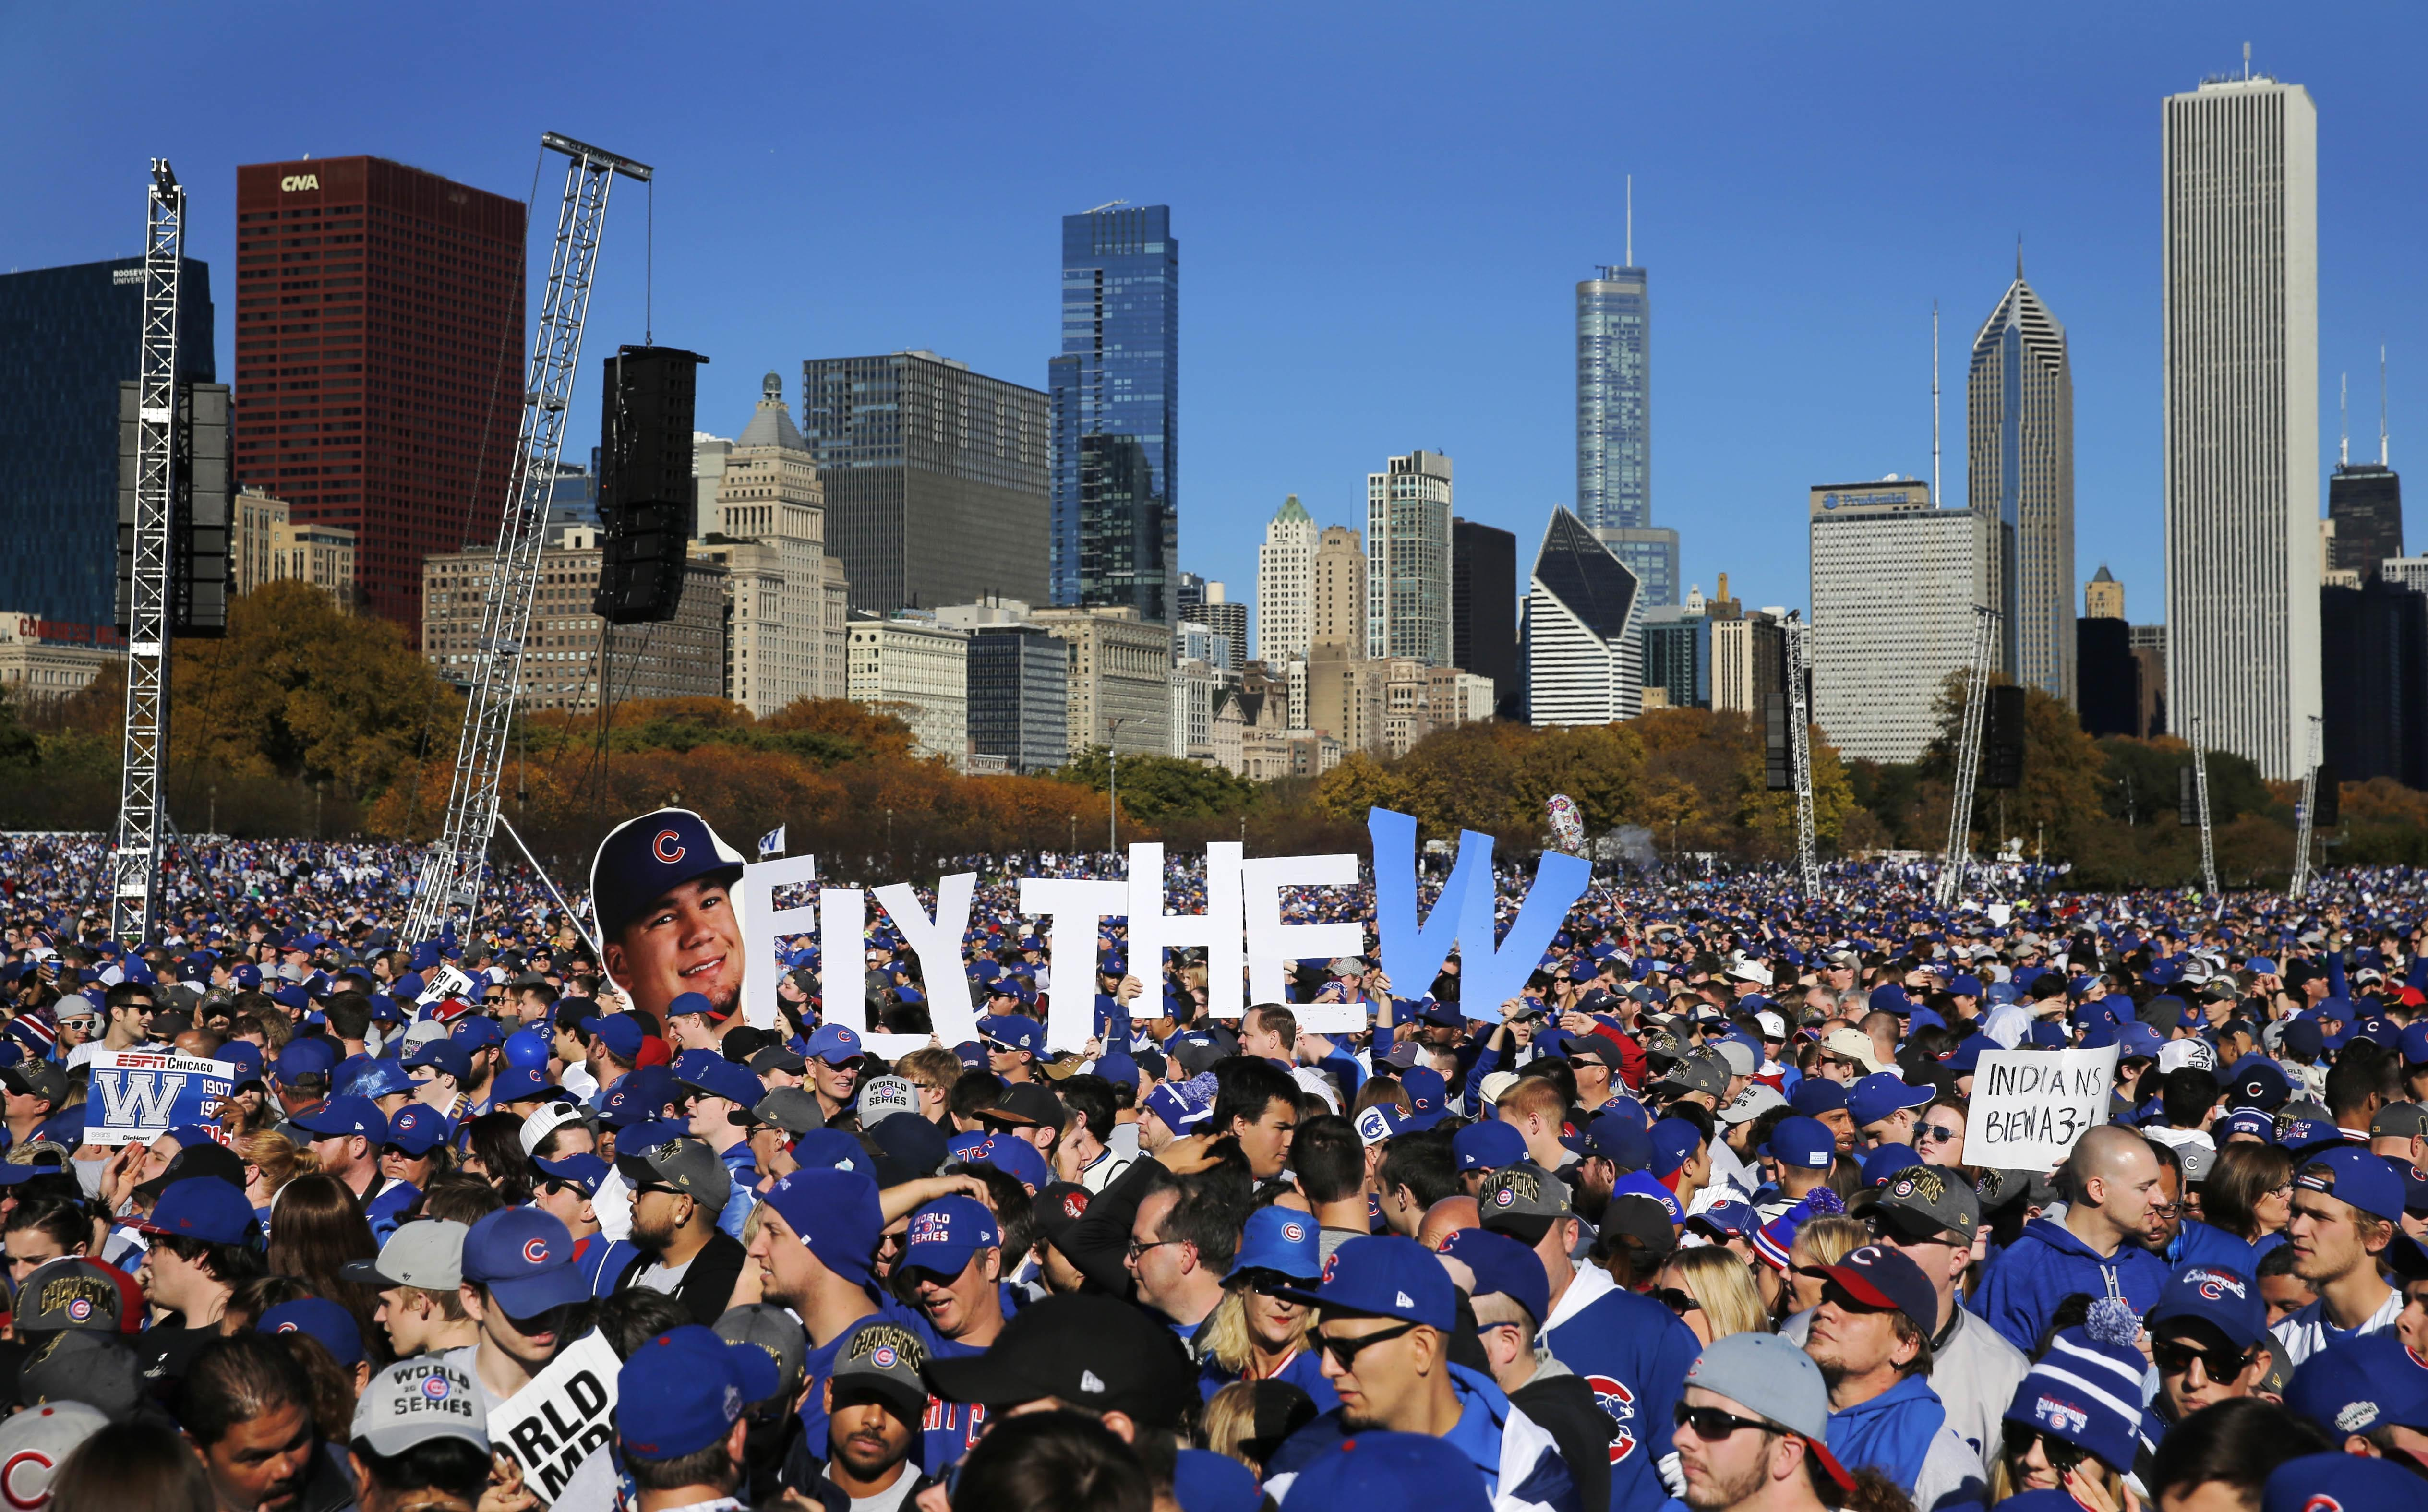 Chicago Cubs fans celebrate during a rally in Grant Park honoring the World Series baseball champions Friday, Nov. 4, 2016, in Chicago's Grant Park.